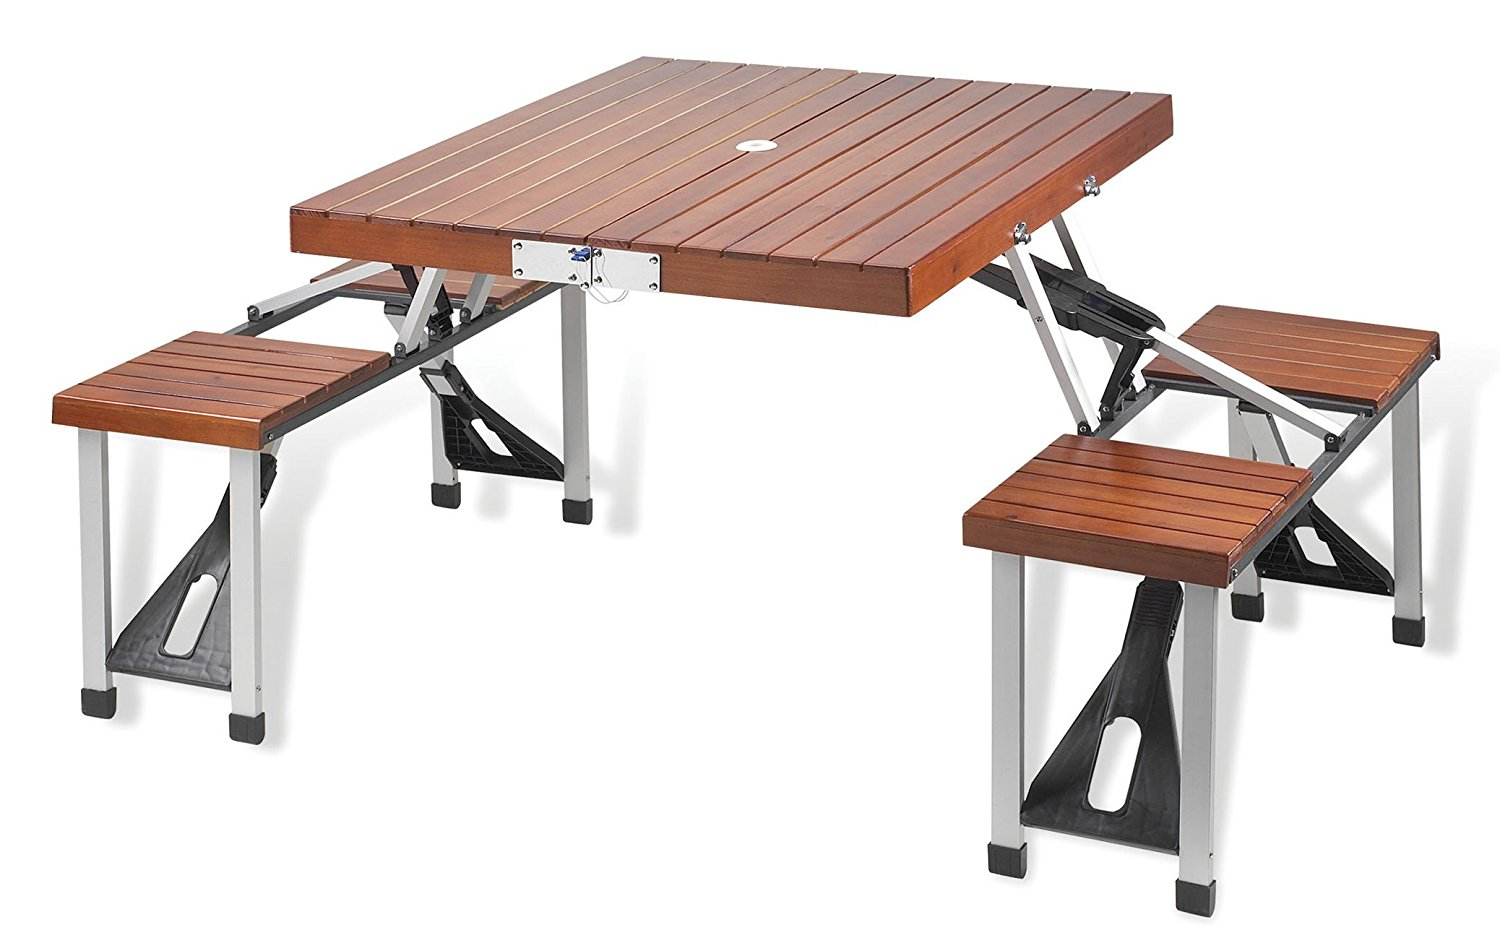 Master folding camping table and chairs amazon.com: picnic at ascot portable picnic table set: kitchen u0026 dining rdgboee